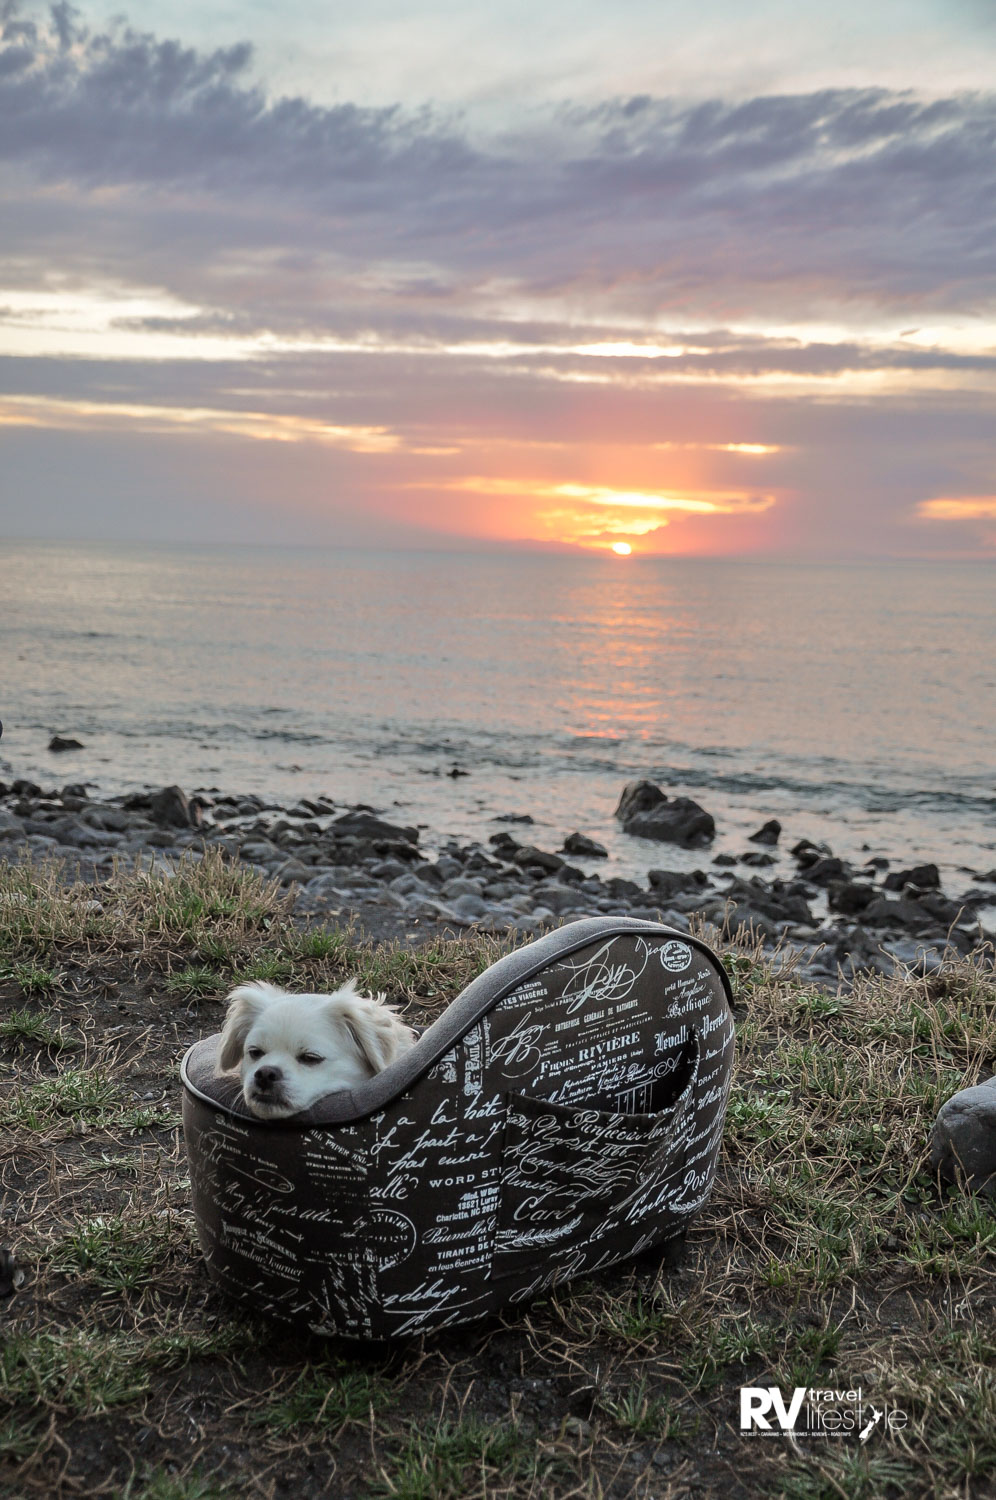 We went to the beach at Ngawi for a night, I was allowed to relax on my couch and watch the sun with Mama